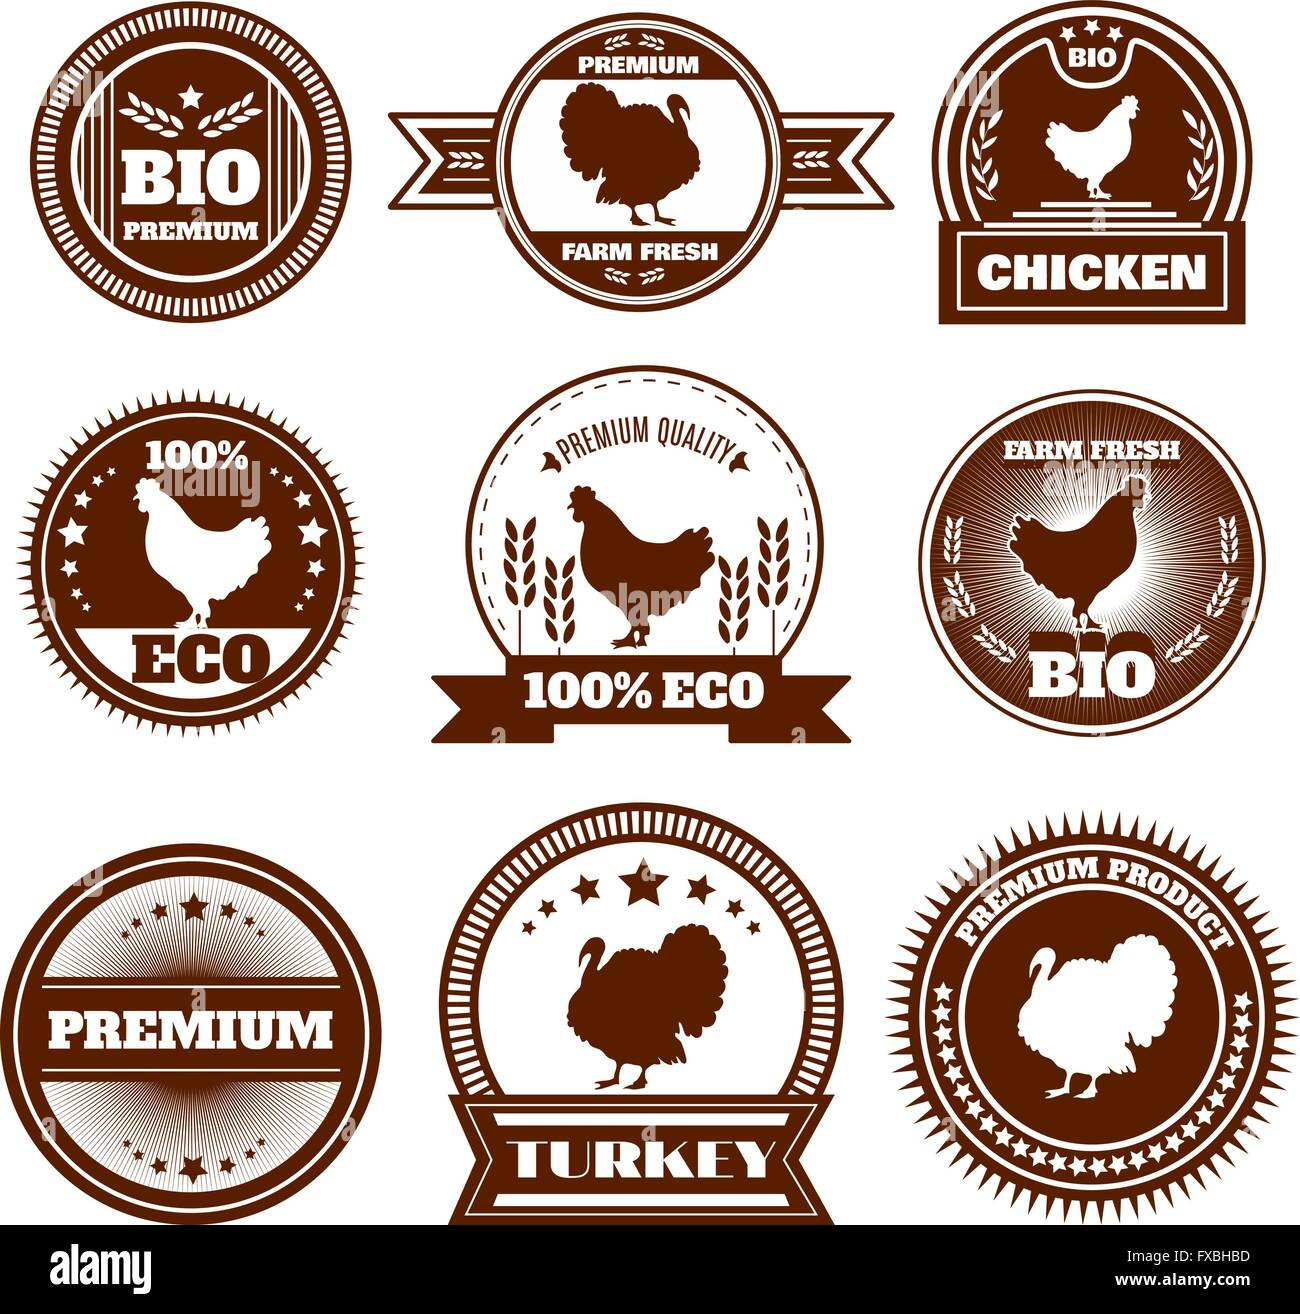 Eco farm chicken turkey emblems - Stock Vector